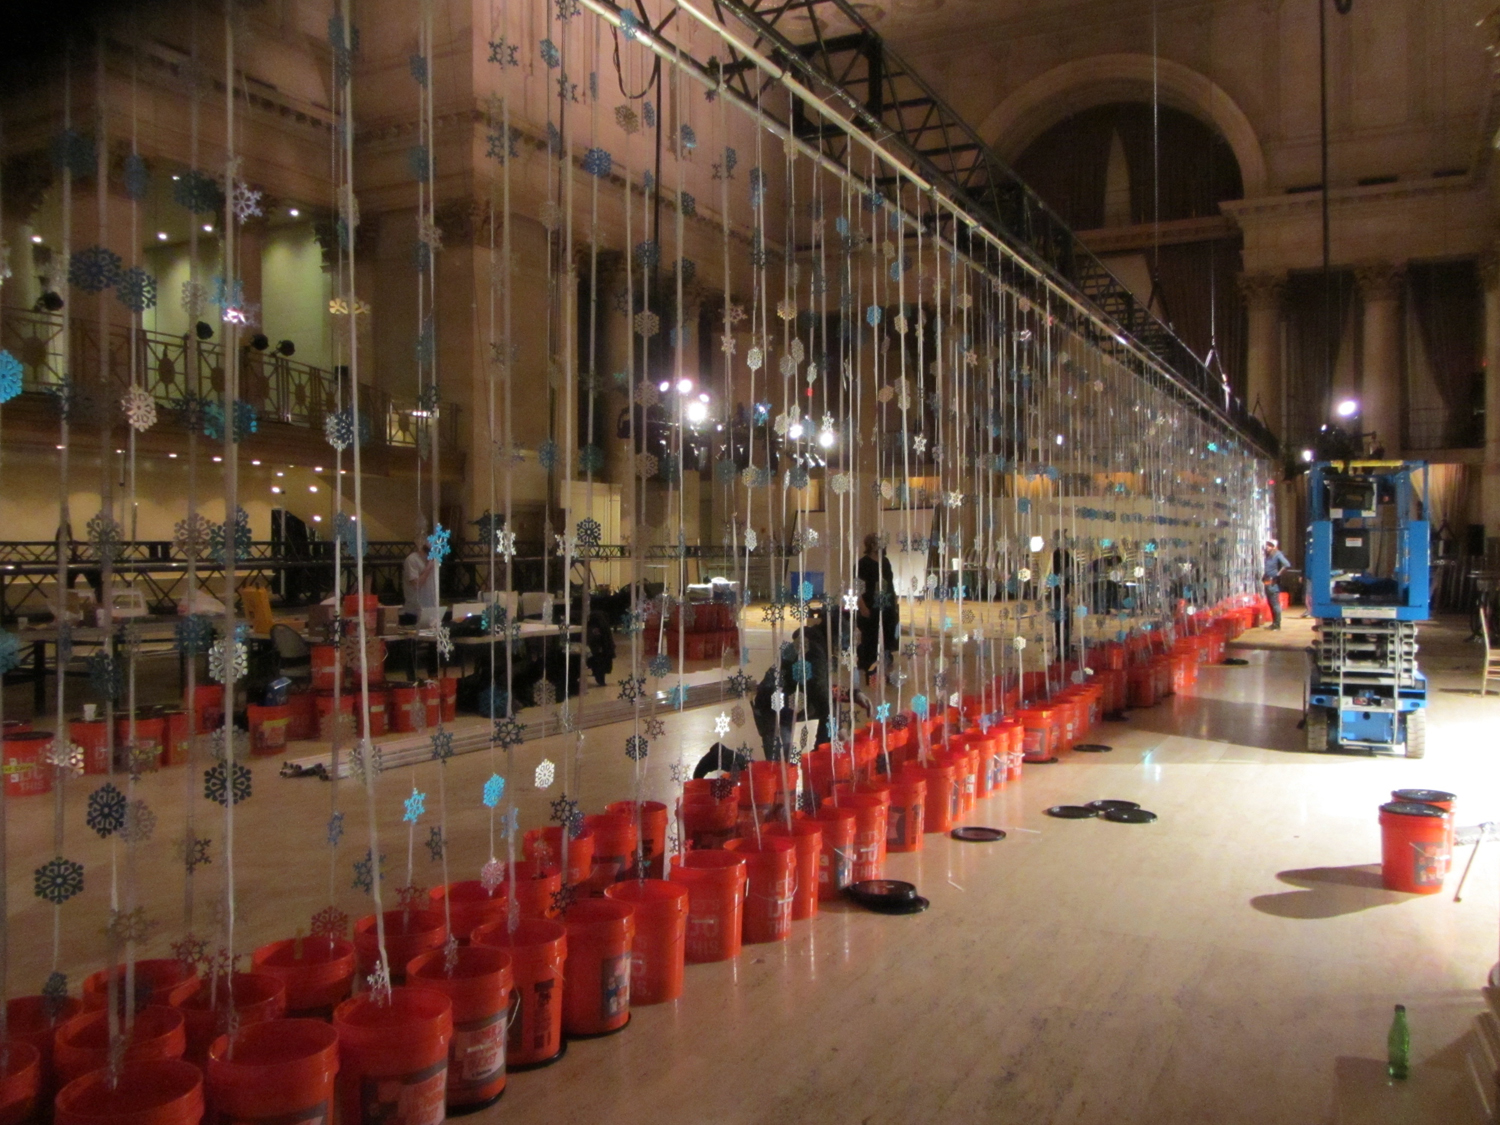 Start of the rig in Cipriani with strings of snowflakes stored in buckets